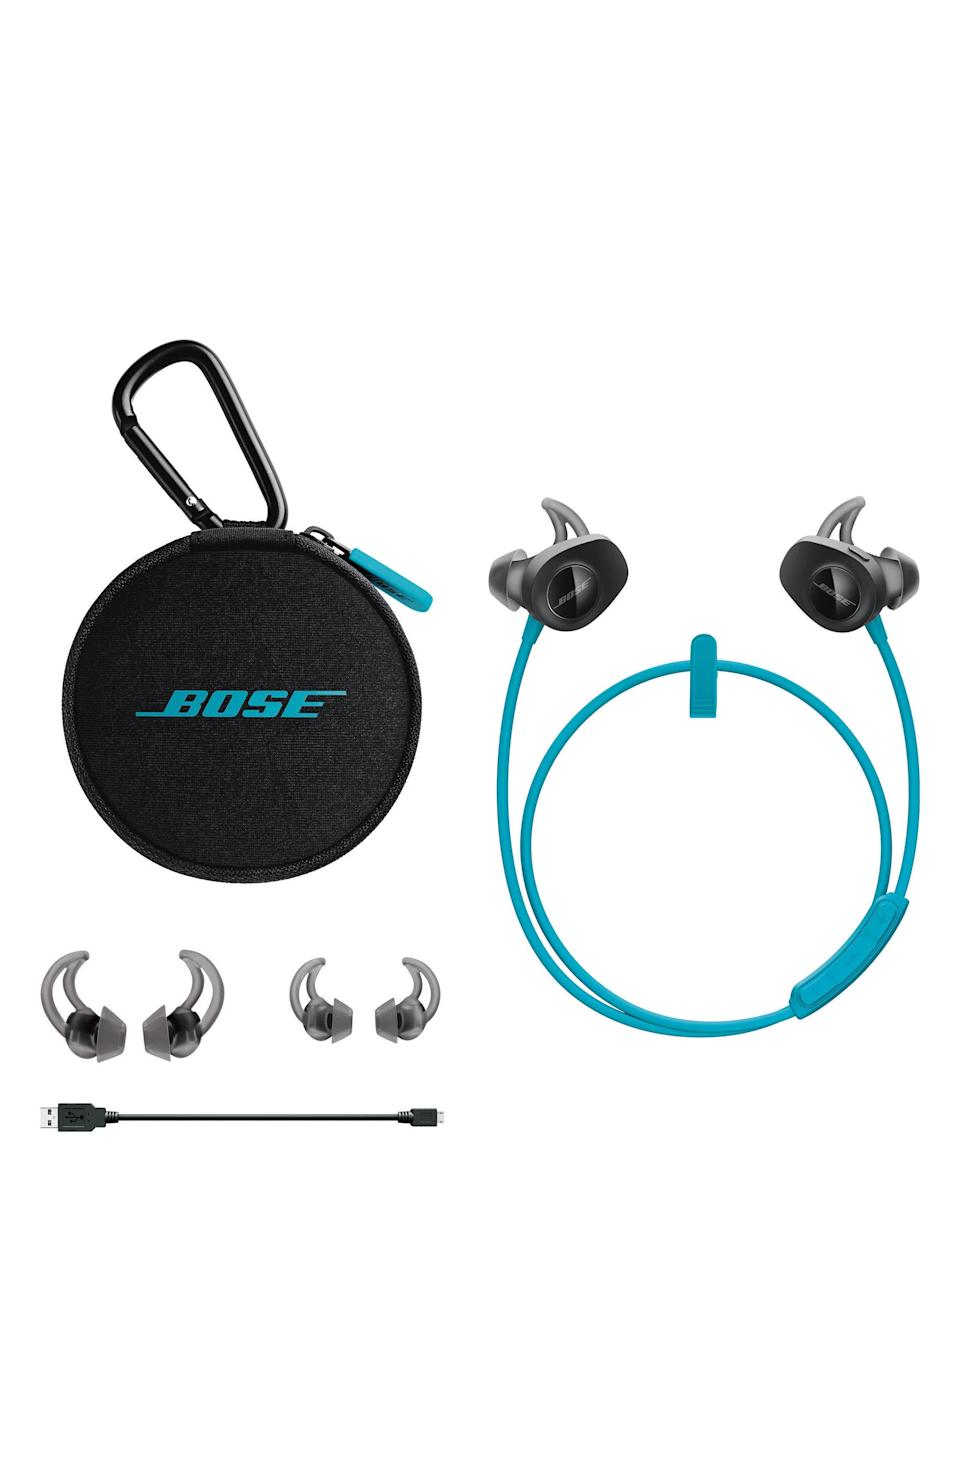 """<p><strong>BOSE</strong></p><p>nordstrom.com</p><p><strong>$129.00</strong></p><p><a href=""""https://go.redirectingat.com?id=74968X1596630&url=https%3A%2F%2Fshop.nordstrom.com%2Fs%2Fbose-soundsport-wireless-earbuds%2F4386893&sref=https%3A%2F%2Fwww.harpersbazaar.com%2Fbeauty%2Fhealth%2Fg23900366%2Fbest-fitness-gifts-ideas%2F"""" rel=""""nofollow noopener"""" target=""""_blank"""" data-ylk=""""slk:SHOP"""" class=""""link rapid-noclick-resp"""">SHOP</a></p><p>You'll push yourself harder during every workout when the sound quality of your music is this good.</p>"""